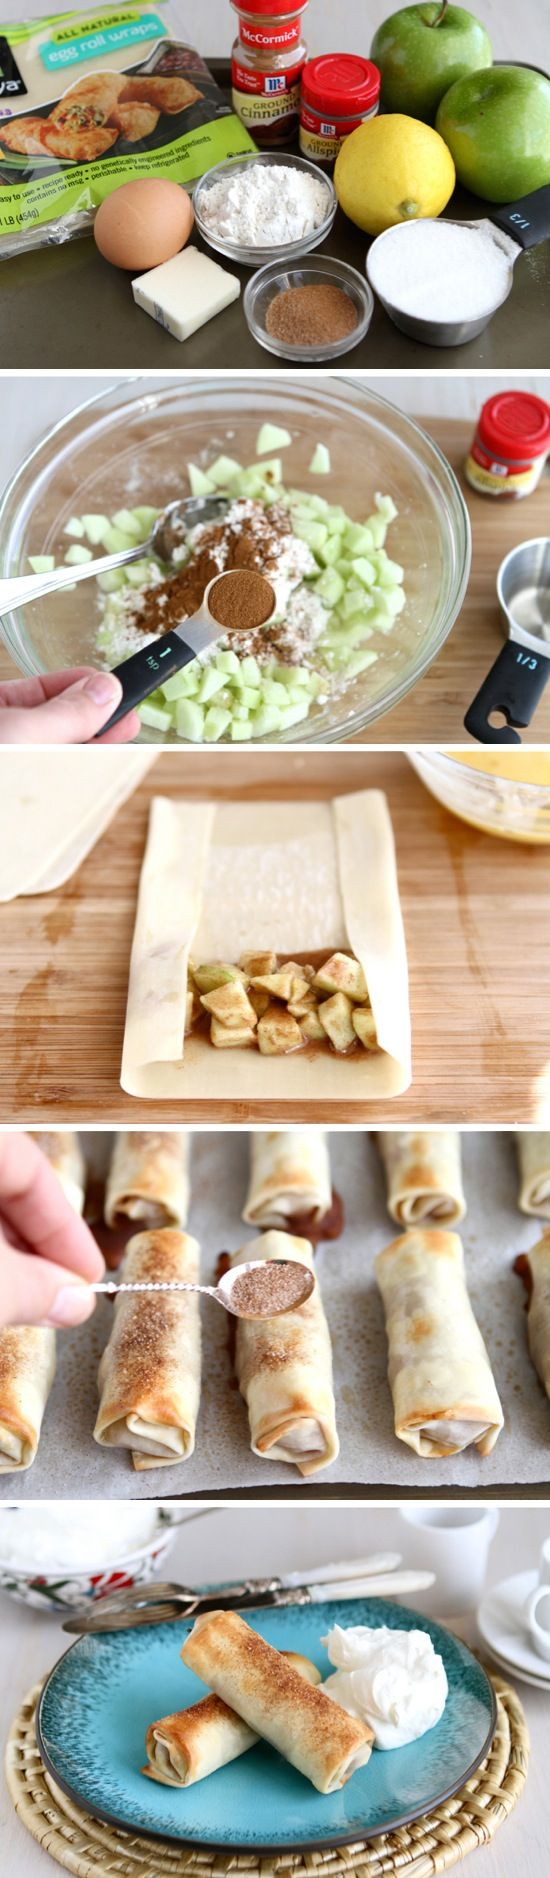 Apple Pie Egg Rolls   Recipe By Photo 2 whole Apples, Peeled, Cored And Diced (I Used Granny Smiths) 1 whole Lemon, Juiced ⅓ cups Sugar 4 Tablespoons Flour 2 teaspoons Cinnamon ¼ teaspoons Allspice ⅛ teaspoons Salt 1 whole Egg Beaten 10  To 12 Egg Roll Wrappers 1 Tablespoon Butter, Melted 2 teaspoons Cinnamon Sugar, For Dusting